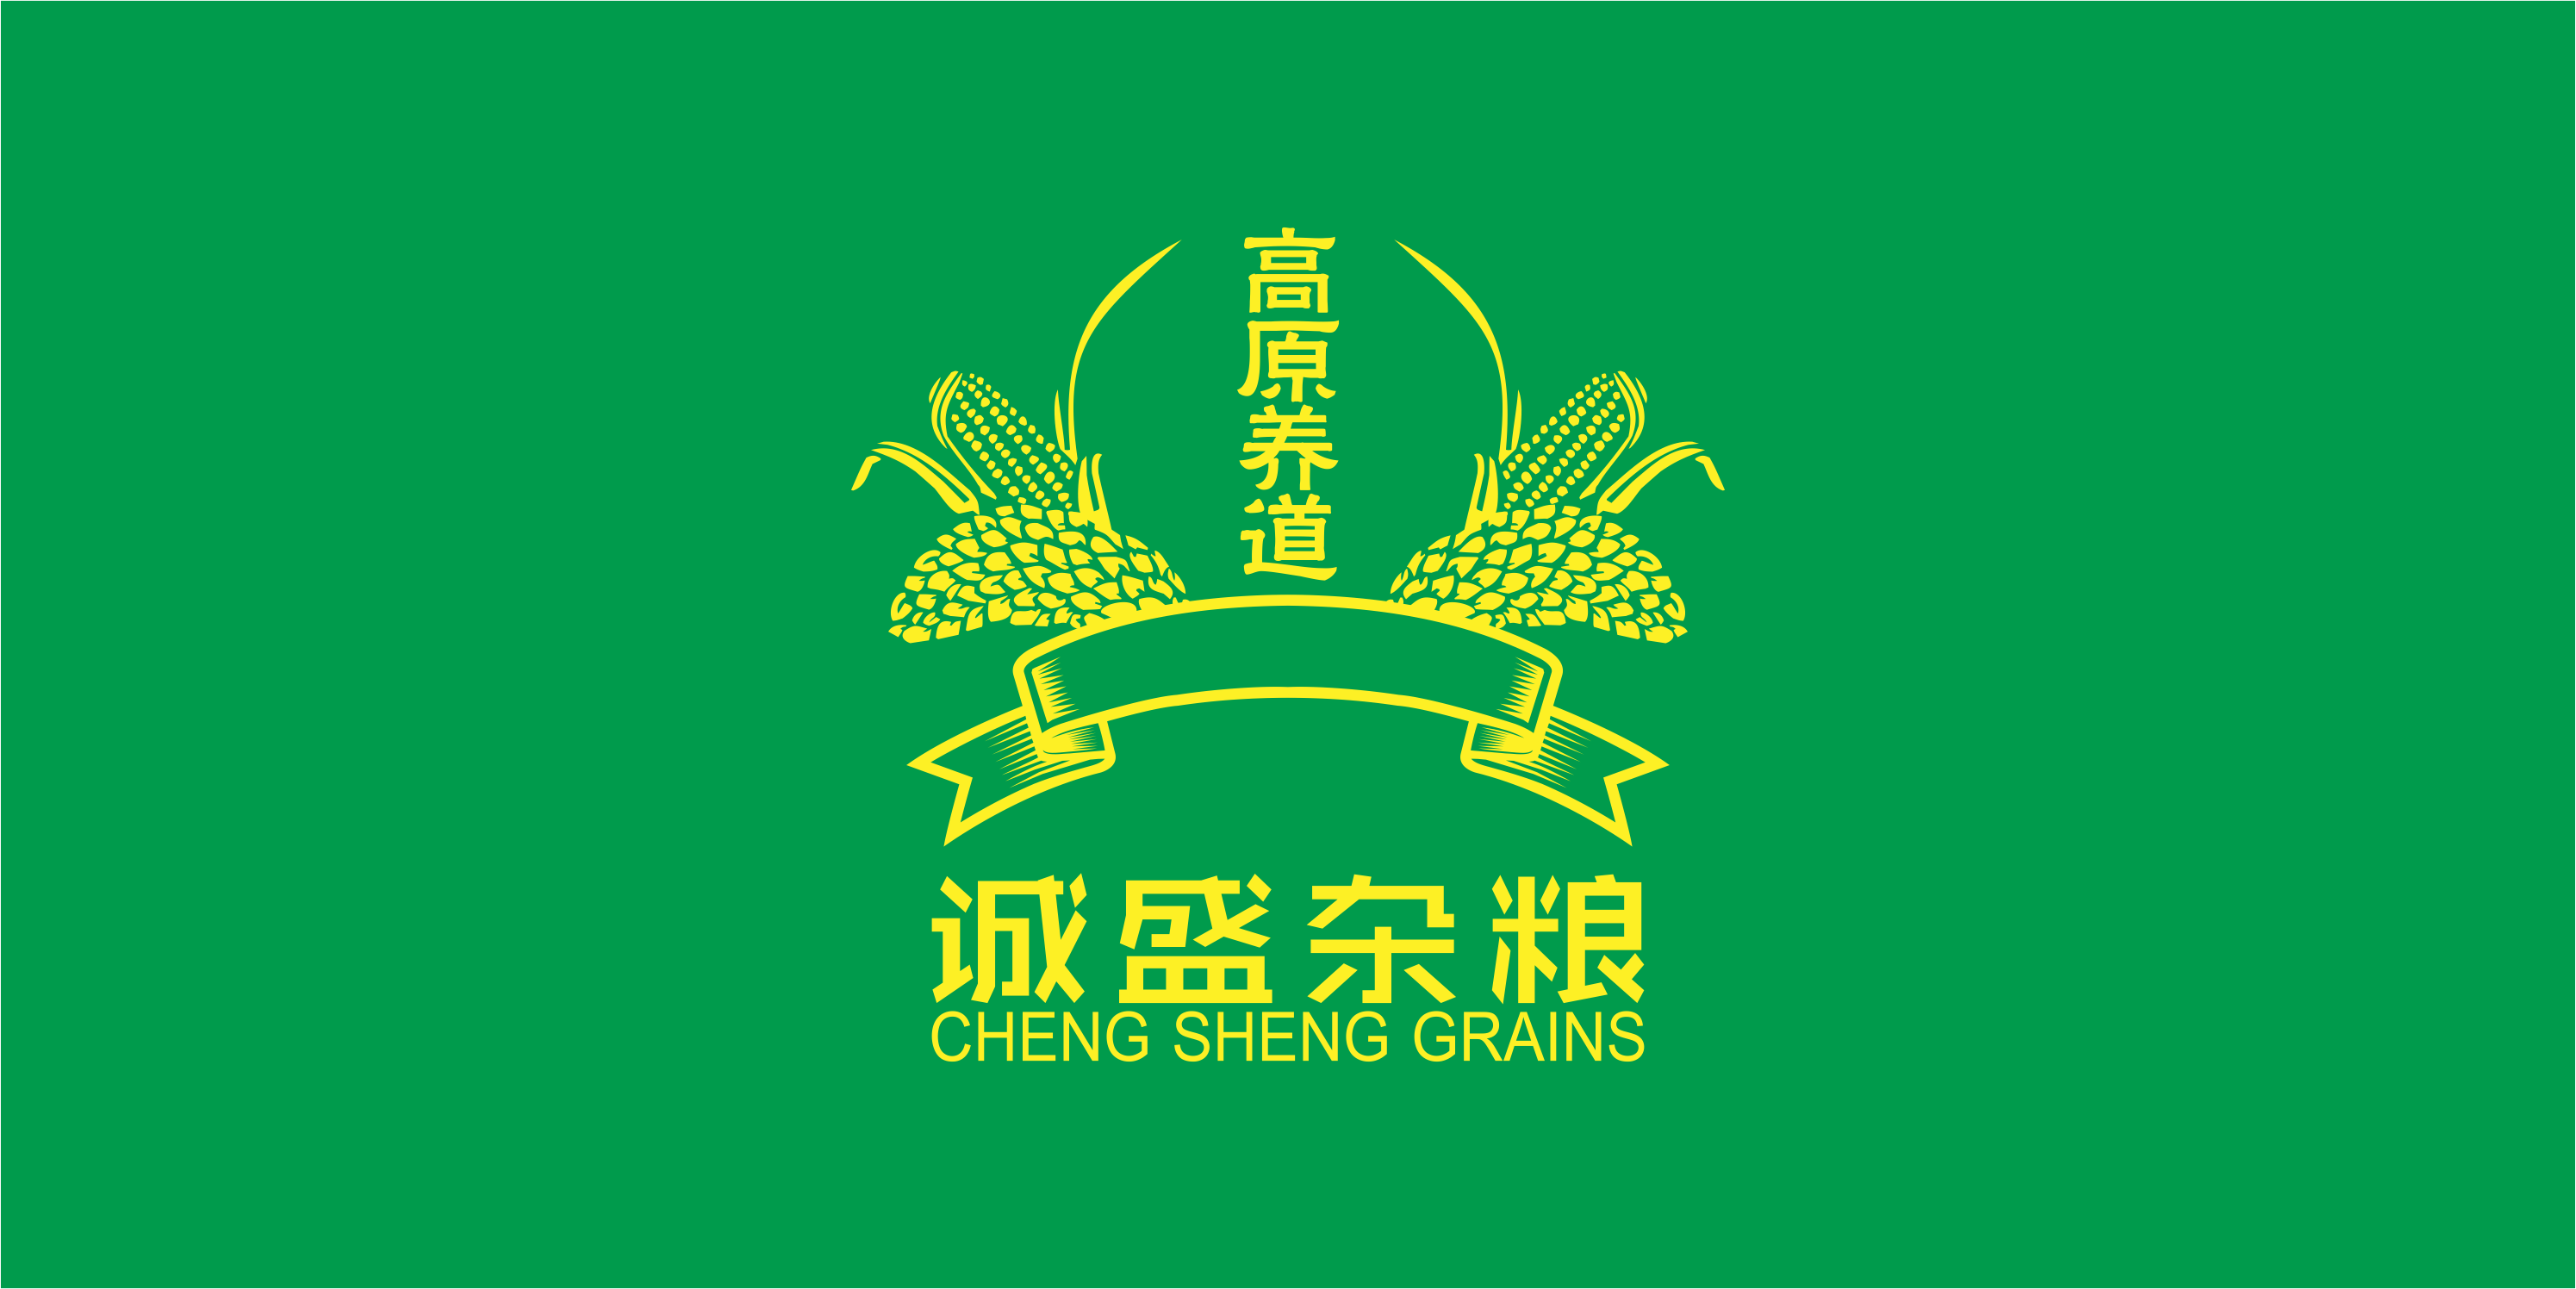 Gansu Chengsheng Original Grain Products Limited Liability Company